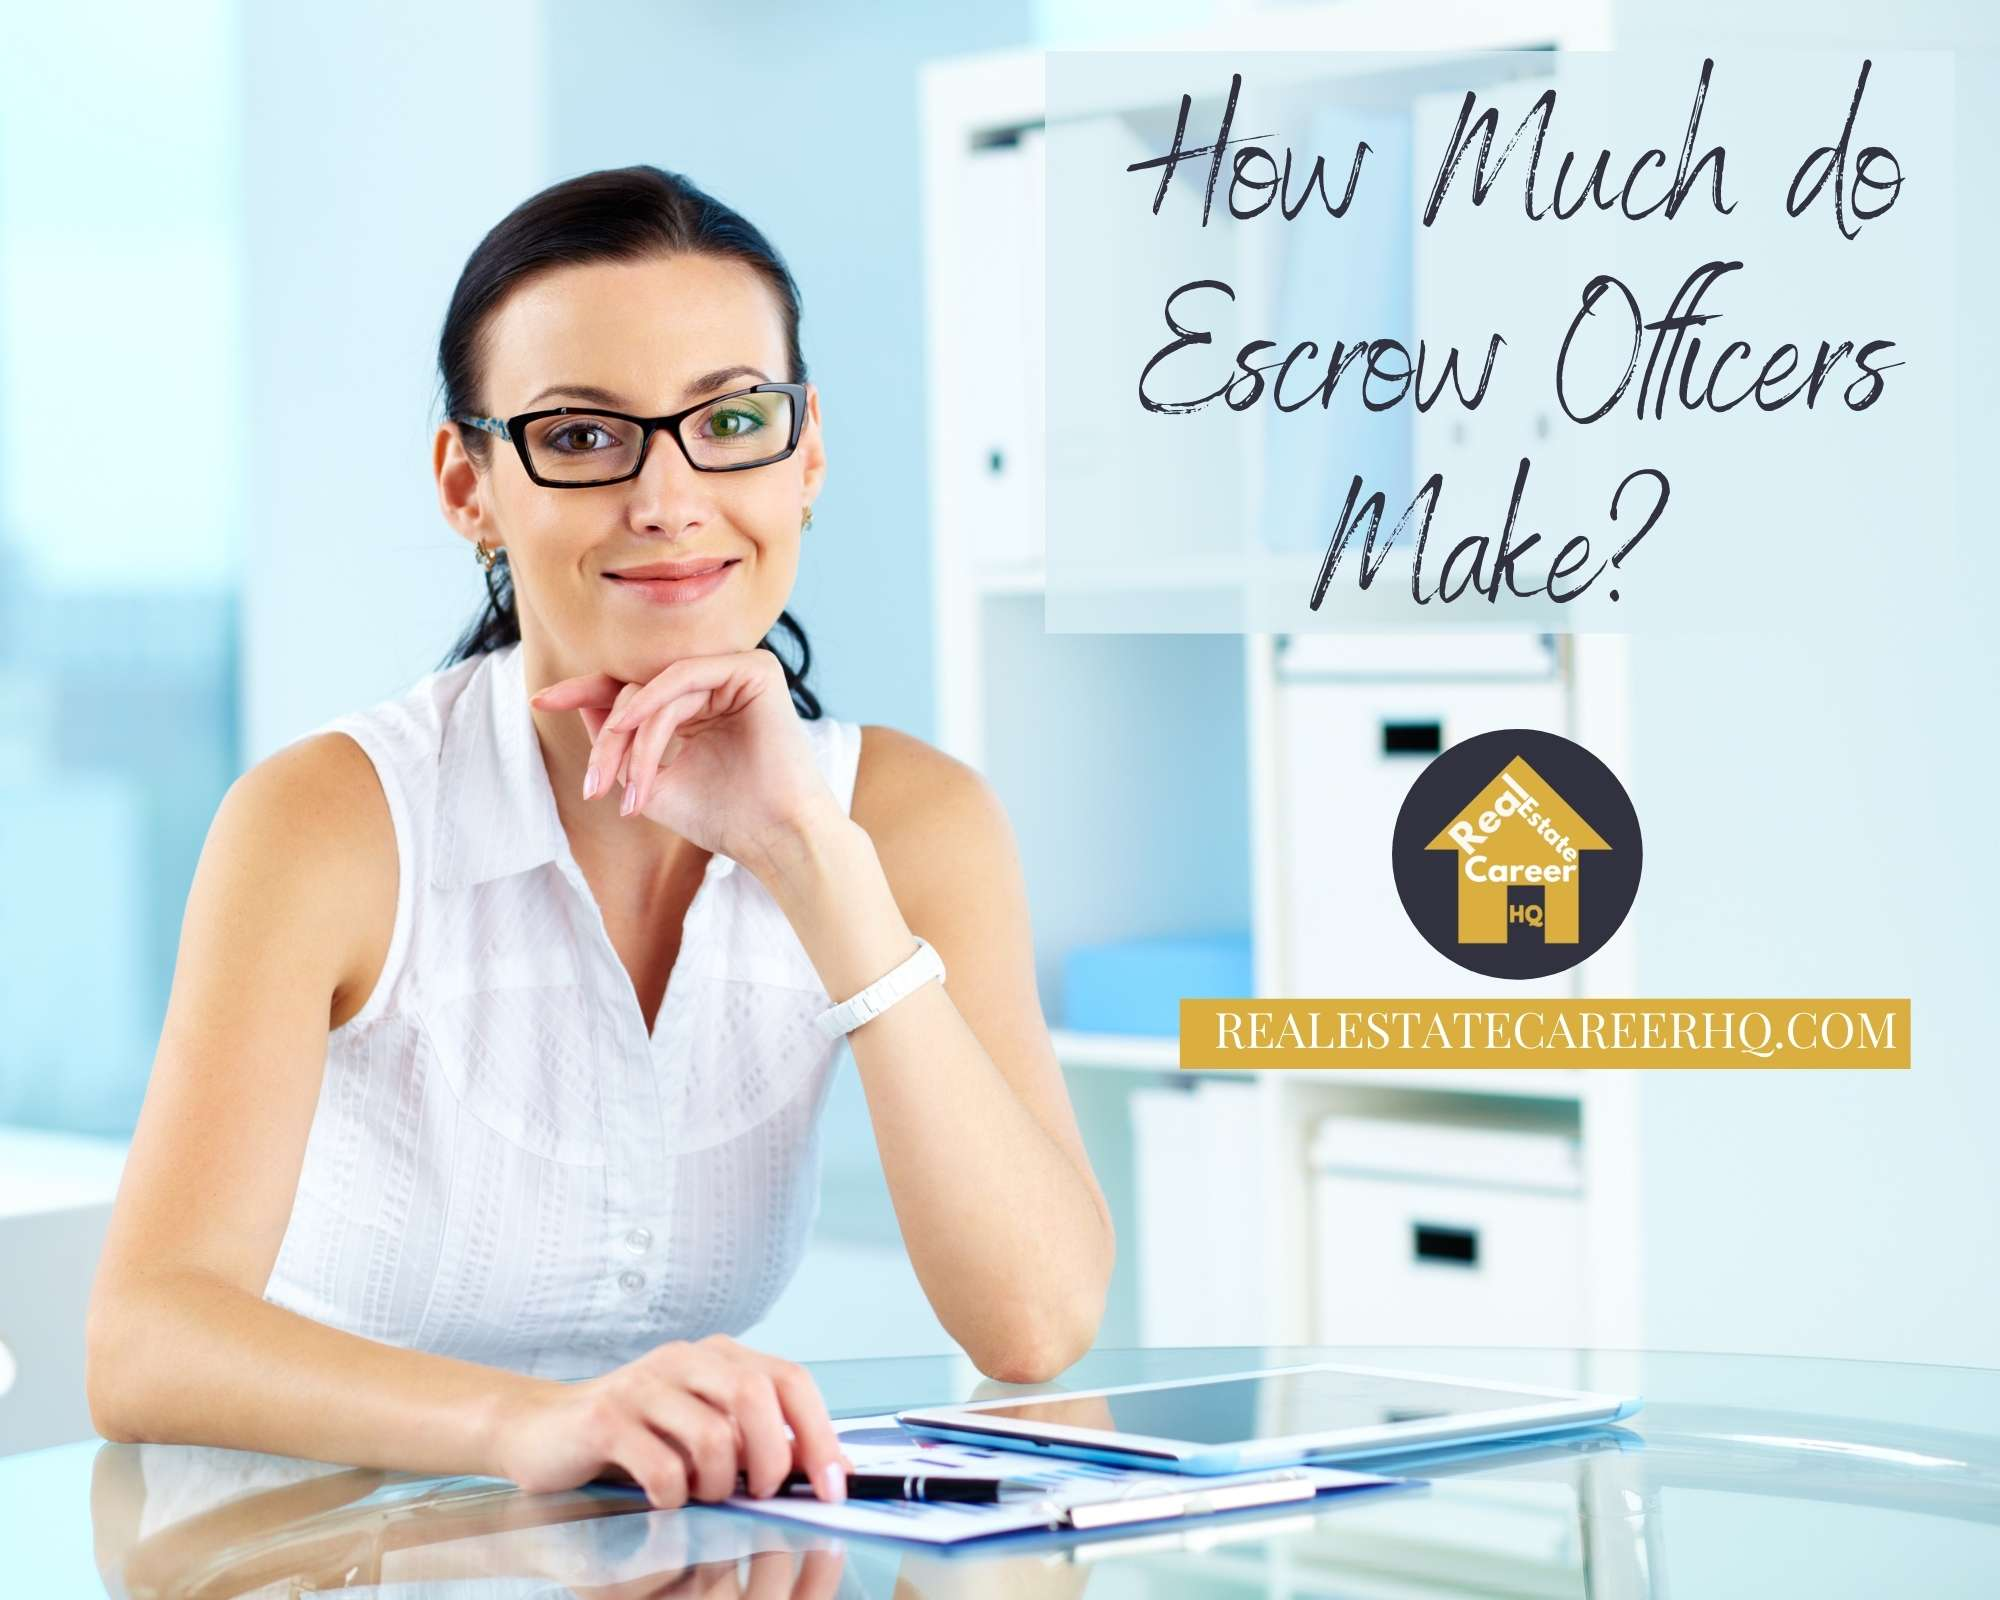 How much do escrow officers make